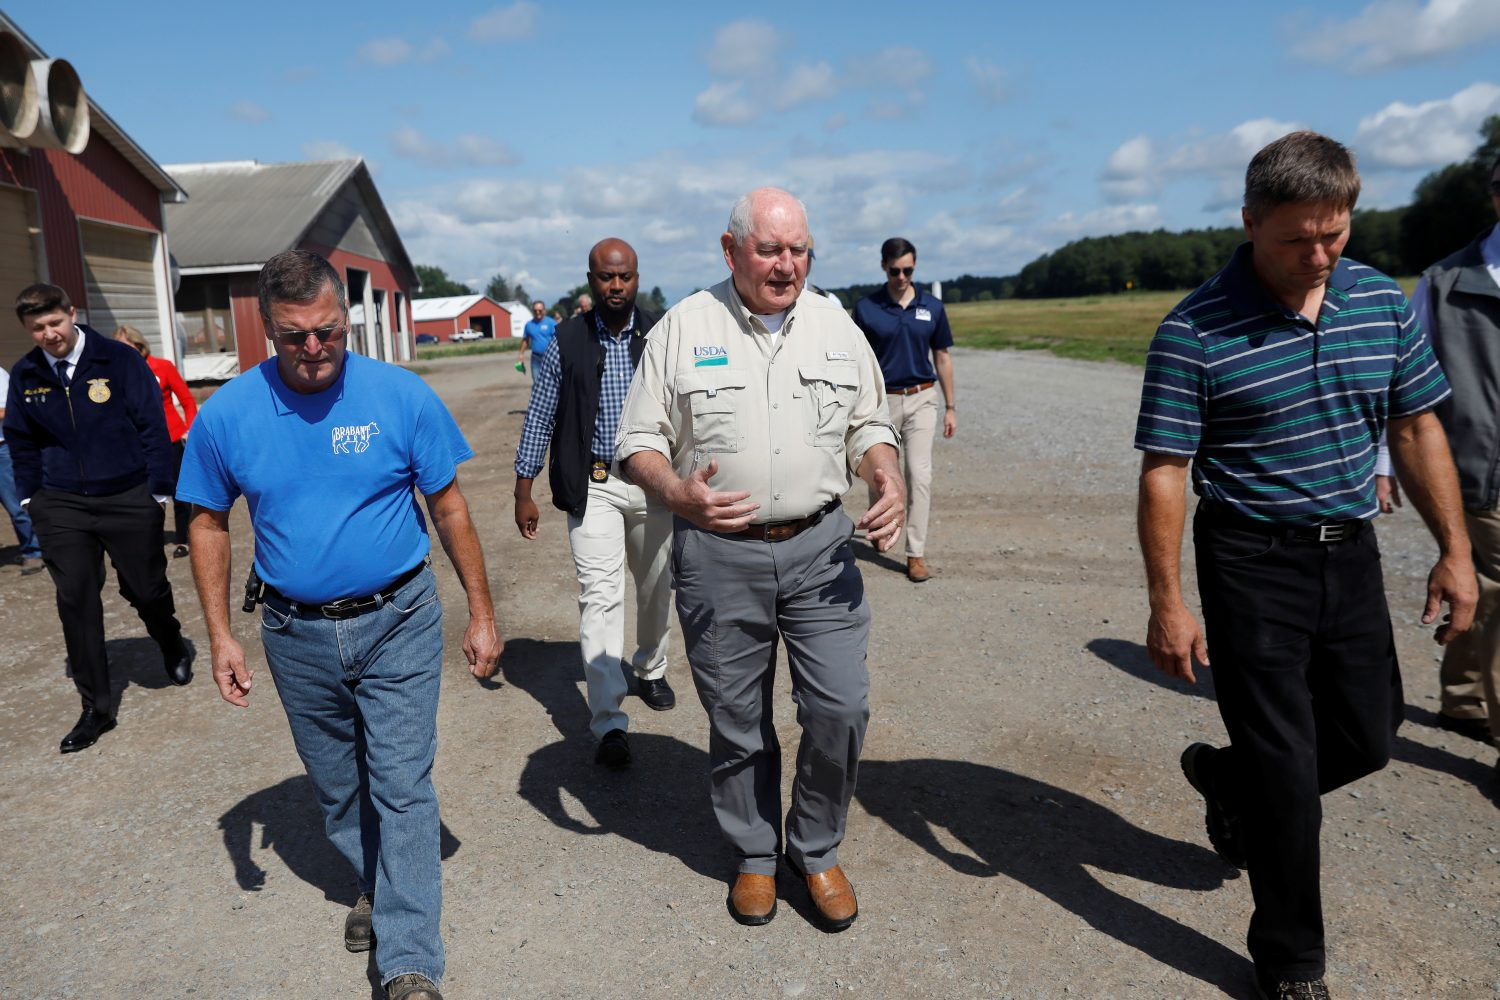 FILE PHOTO: U.S. Agriculture Secretary Sonny Perdue (C) tours the Brabant Farms in Verona, New York, U.S., August 23, 2018. Picture taken August 23, 2018. REUTERS/Shannon Stapleton